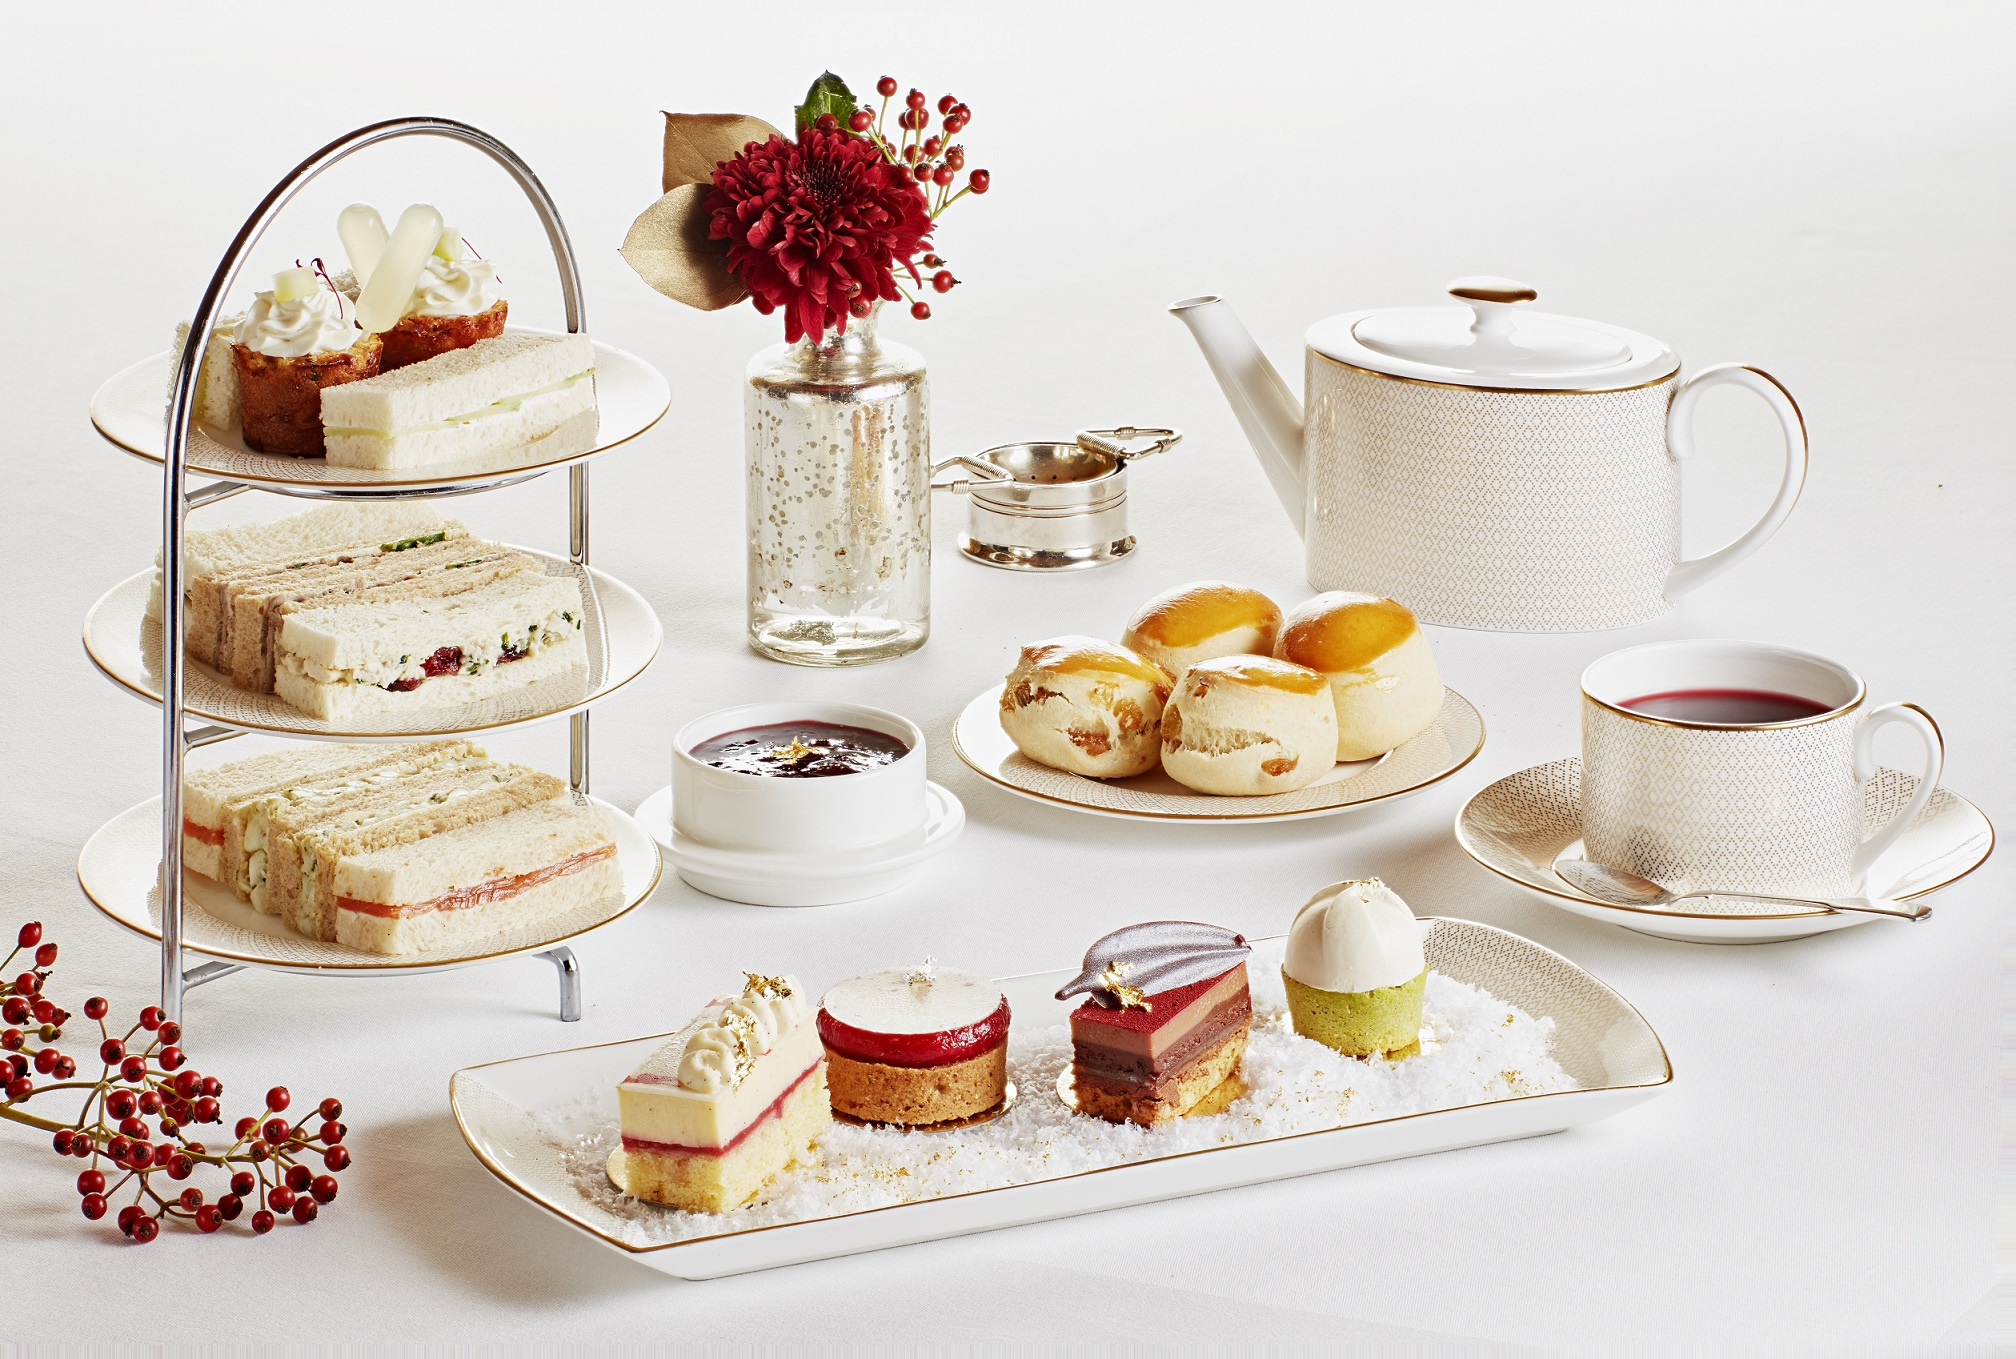 Festive Diptyque Afternoon Tea, Hotel Cafe Royal, London 1